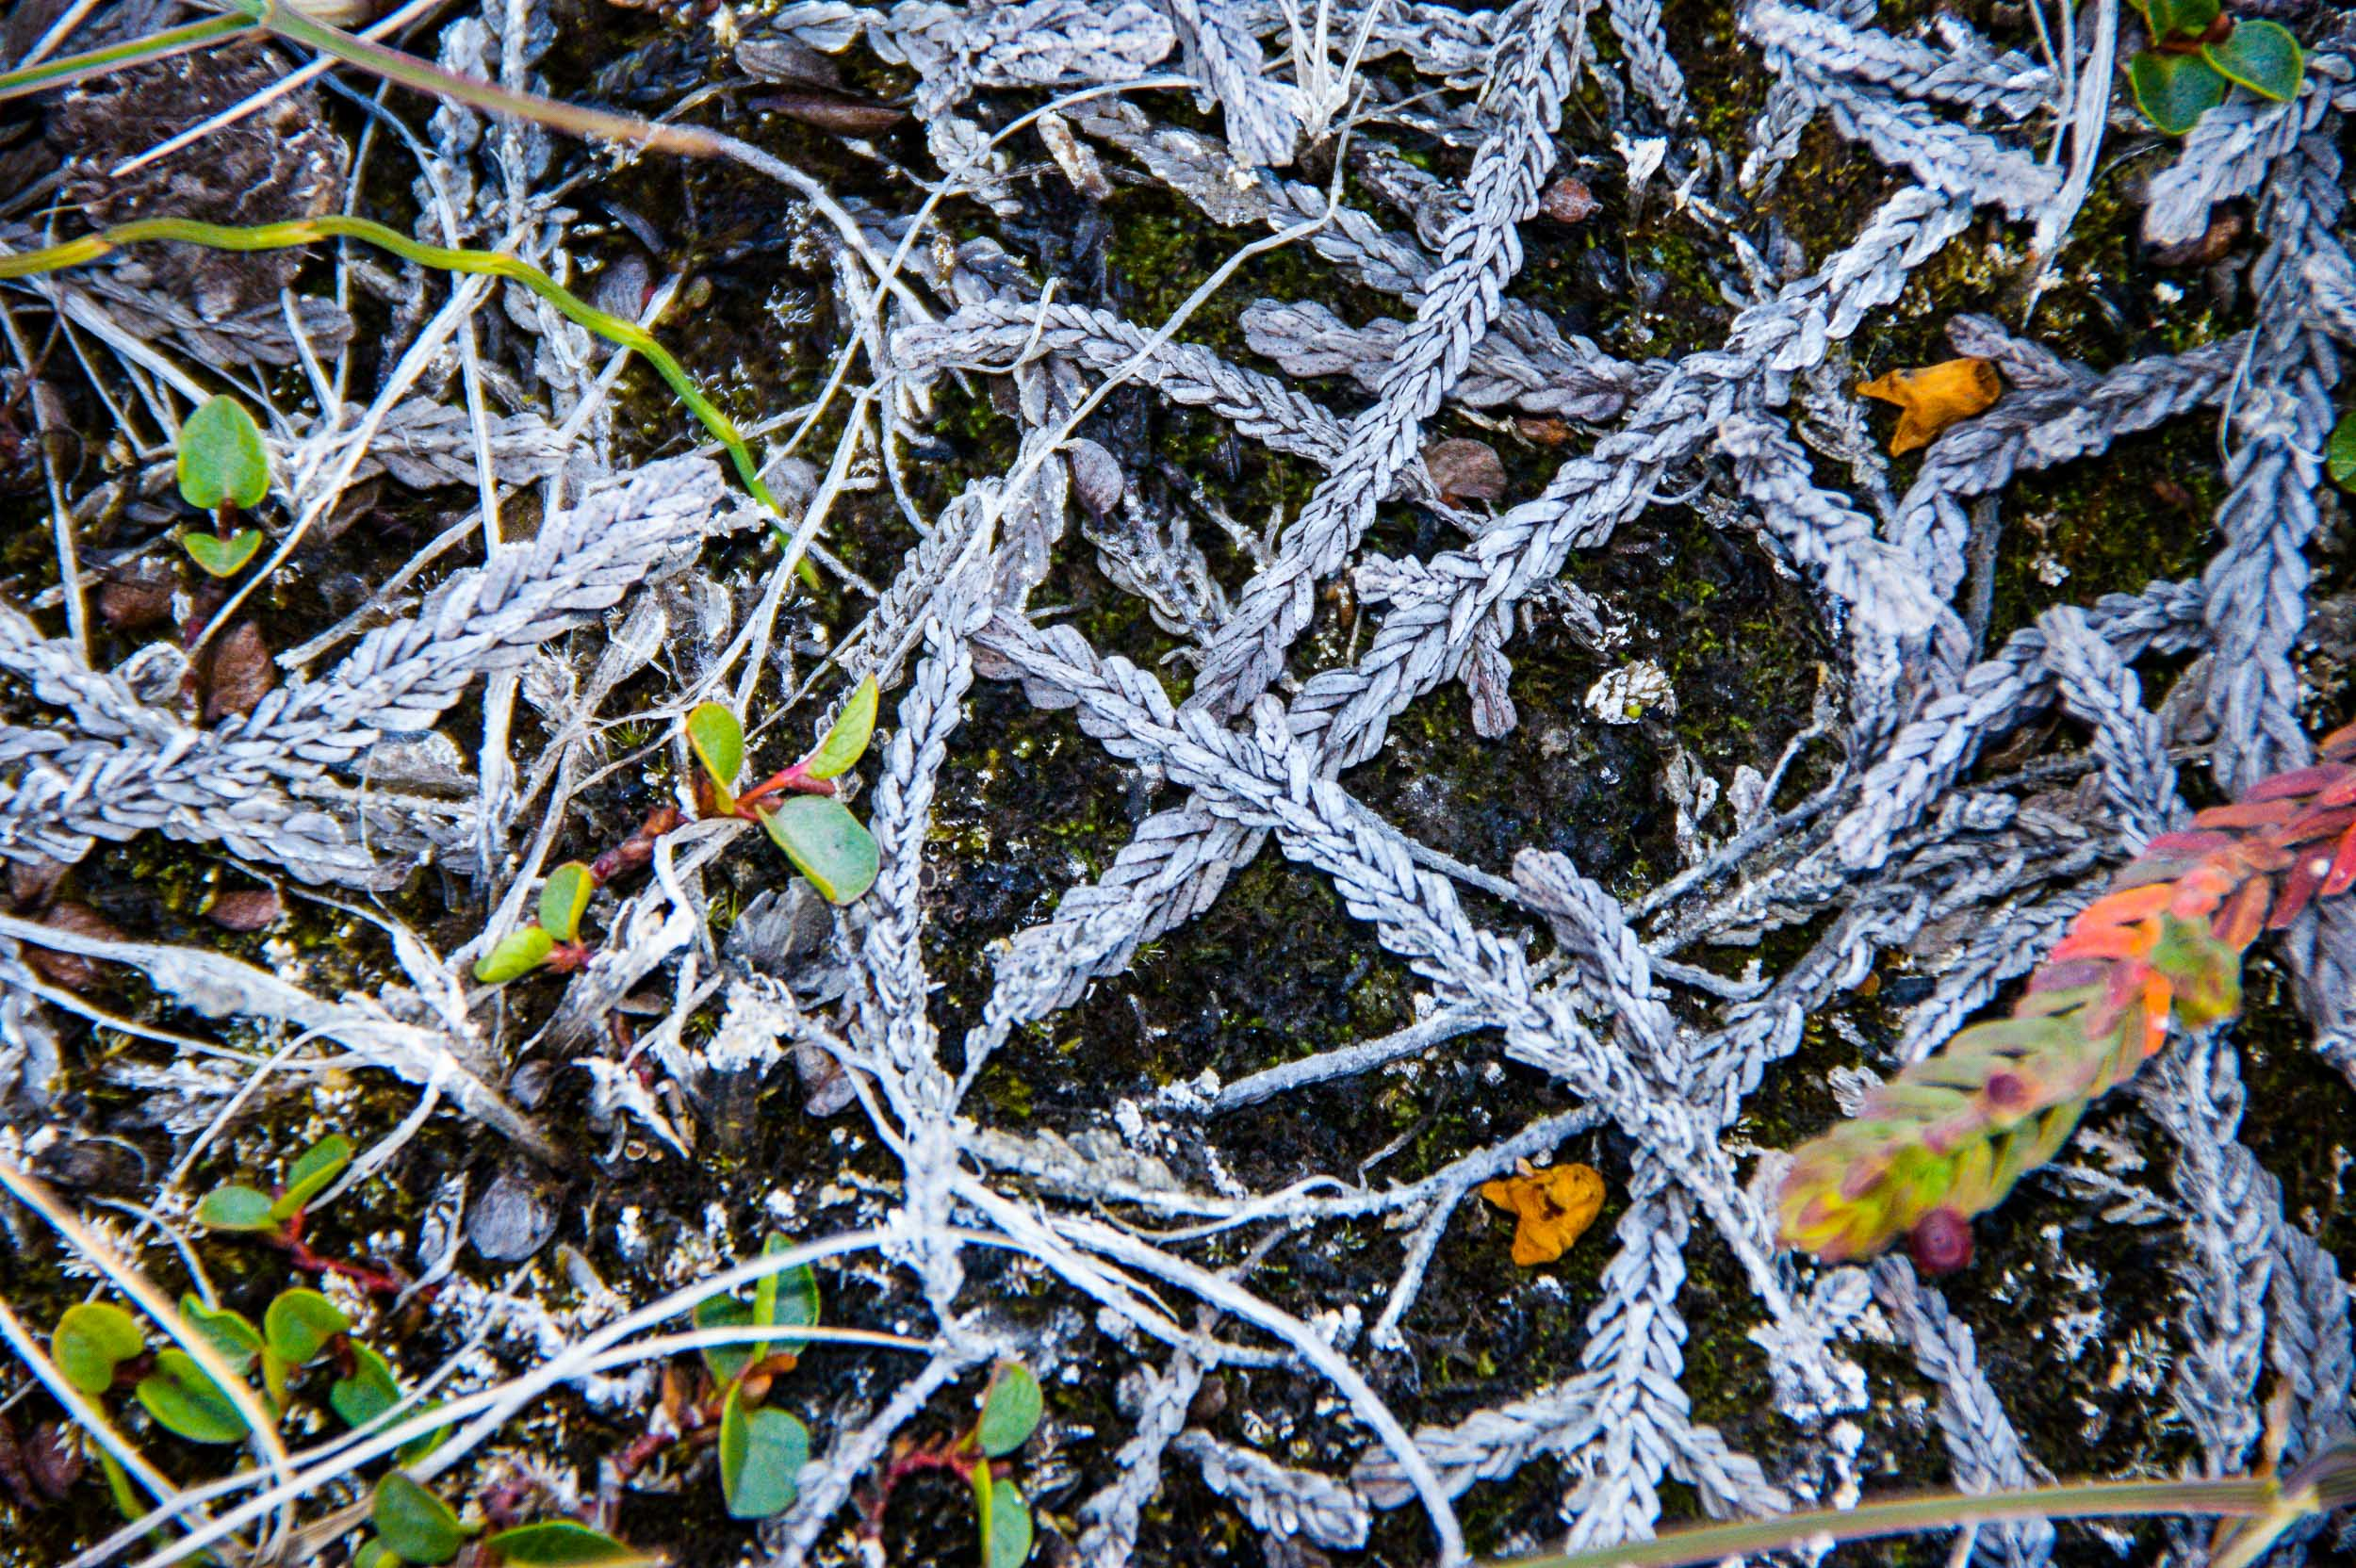 Detail of dead shoots of white arctic bell-heather. Polar willow is seen with green oval leaves. JONAA©Jarle W. Bjerke